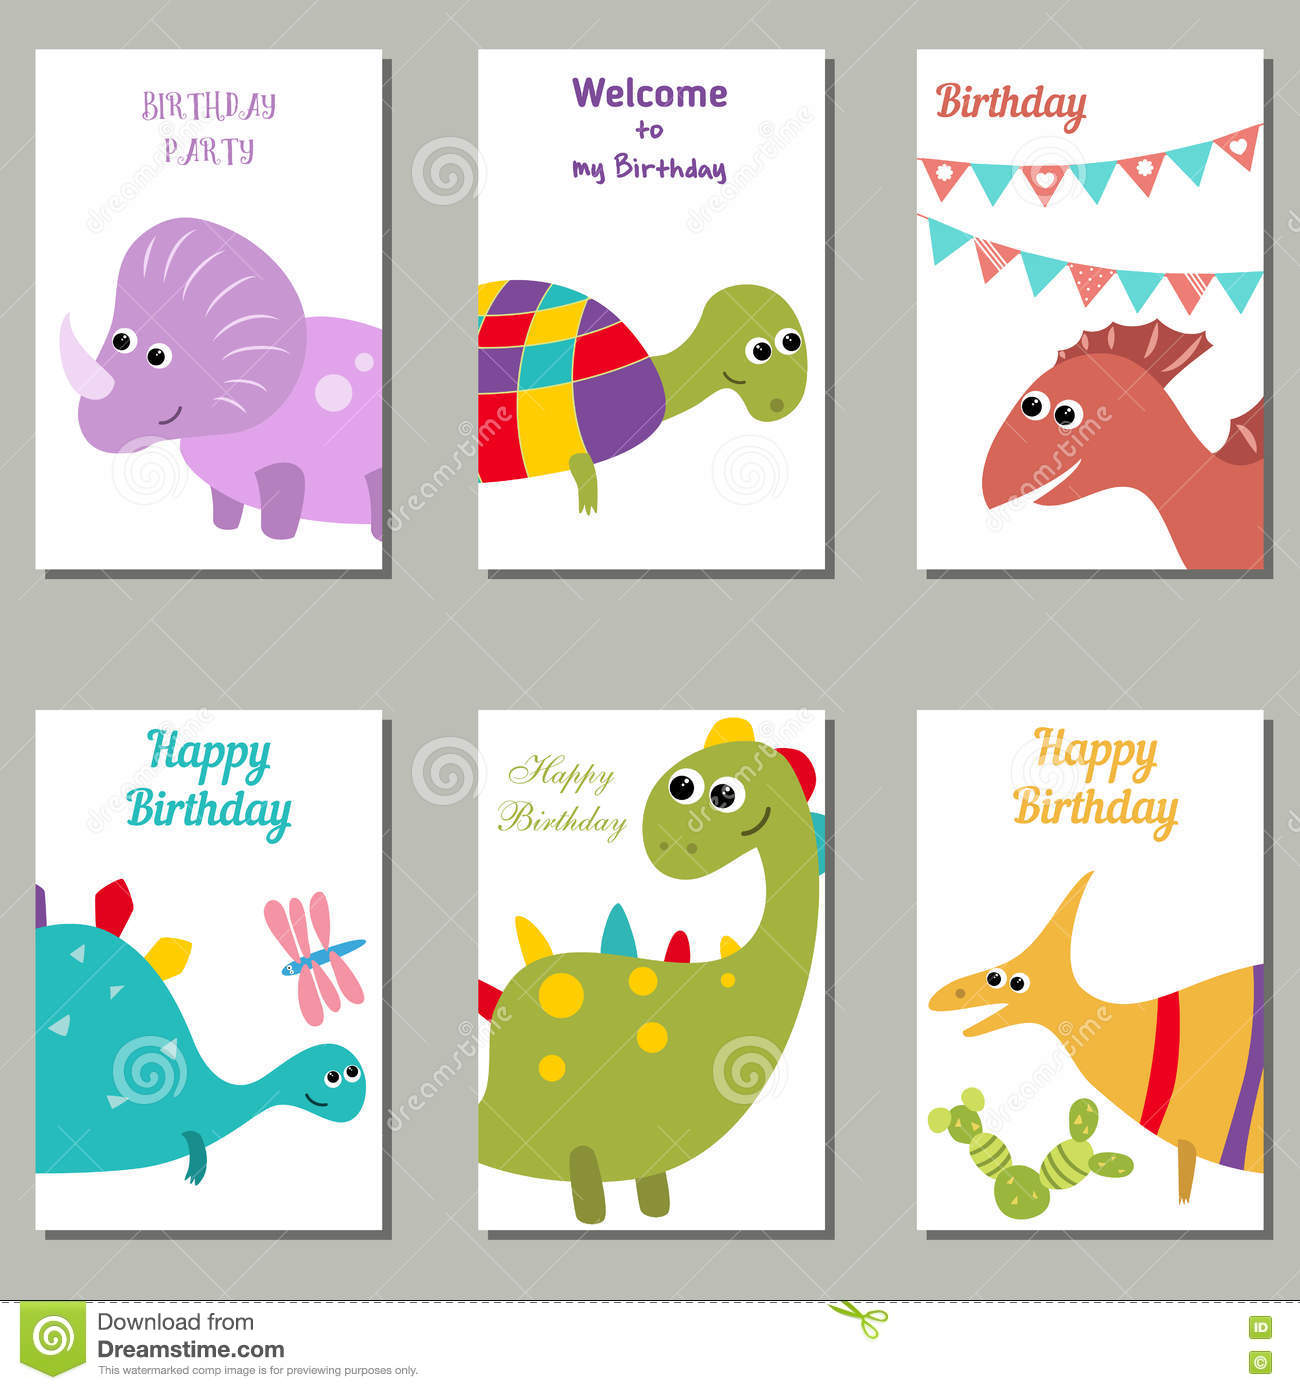 Collection Of Cute Birthday Cards. Stock Vector - Illustration of ...